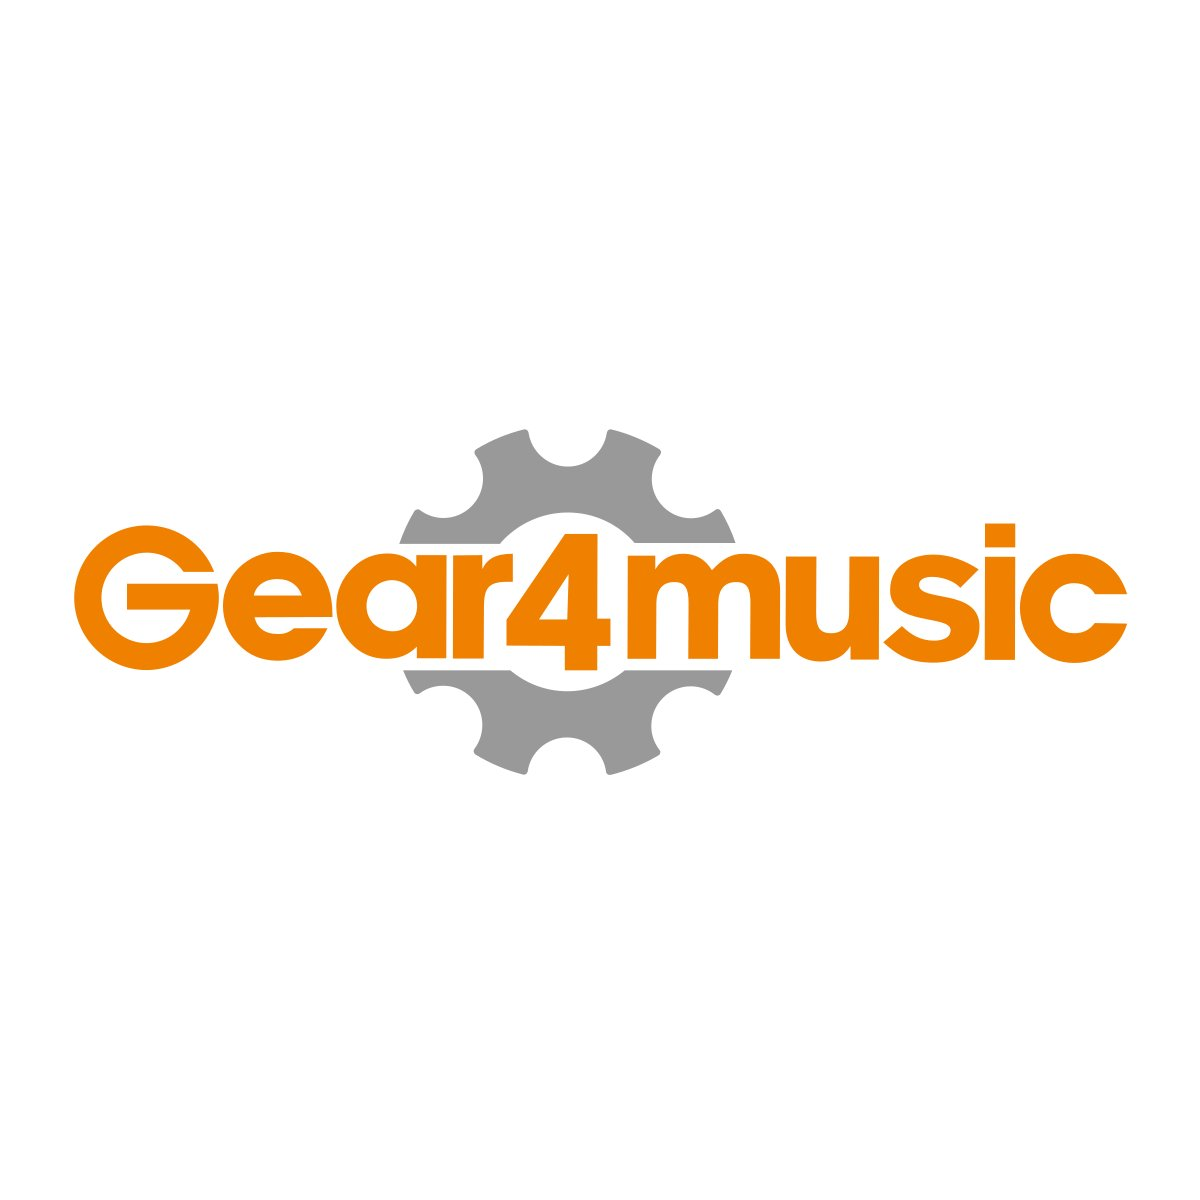 Violino Gear4music de Estudante de 3/4, Gear4music